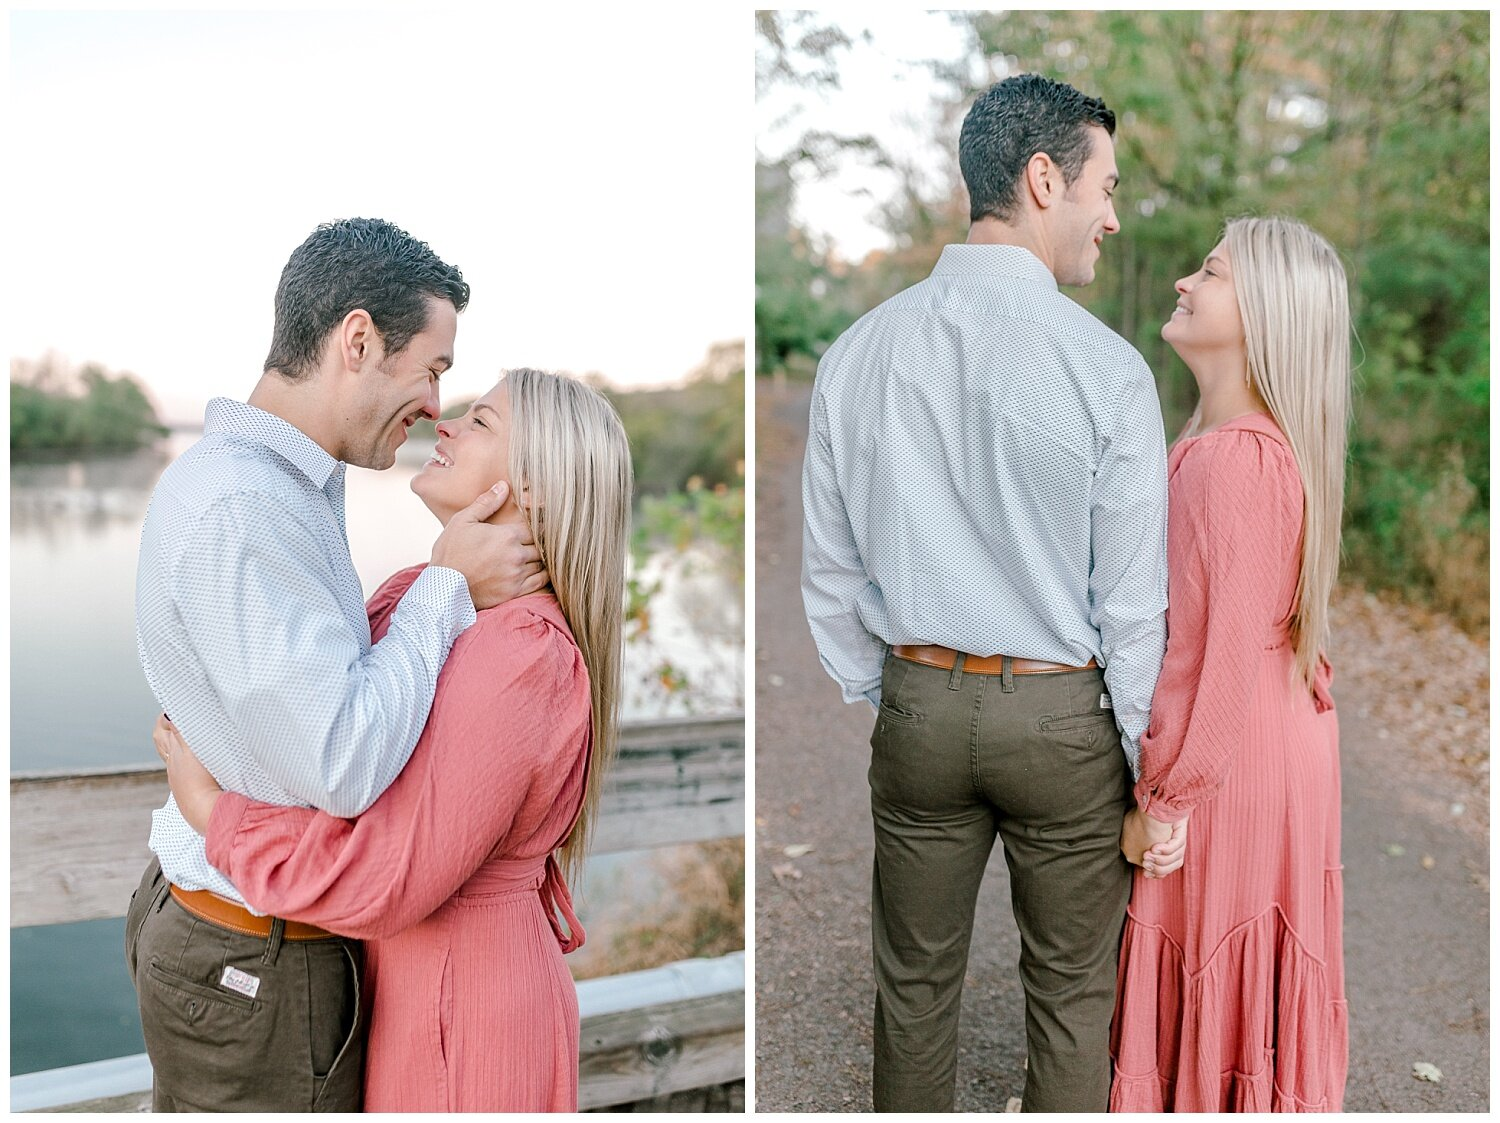 Peace Valley Park Doylestown bucks county PA fall sunrise engagement session  lehigh valley pennsylvania based wedding and lifestyle photographer Jeannie Lytle of Lytle Photography Company_0004.jpg